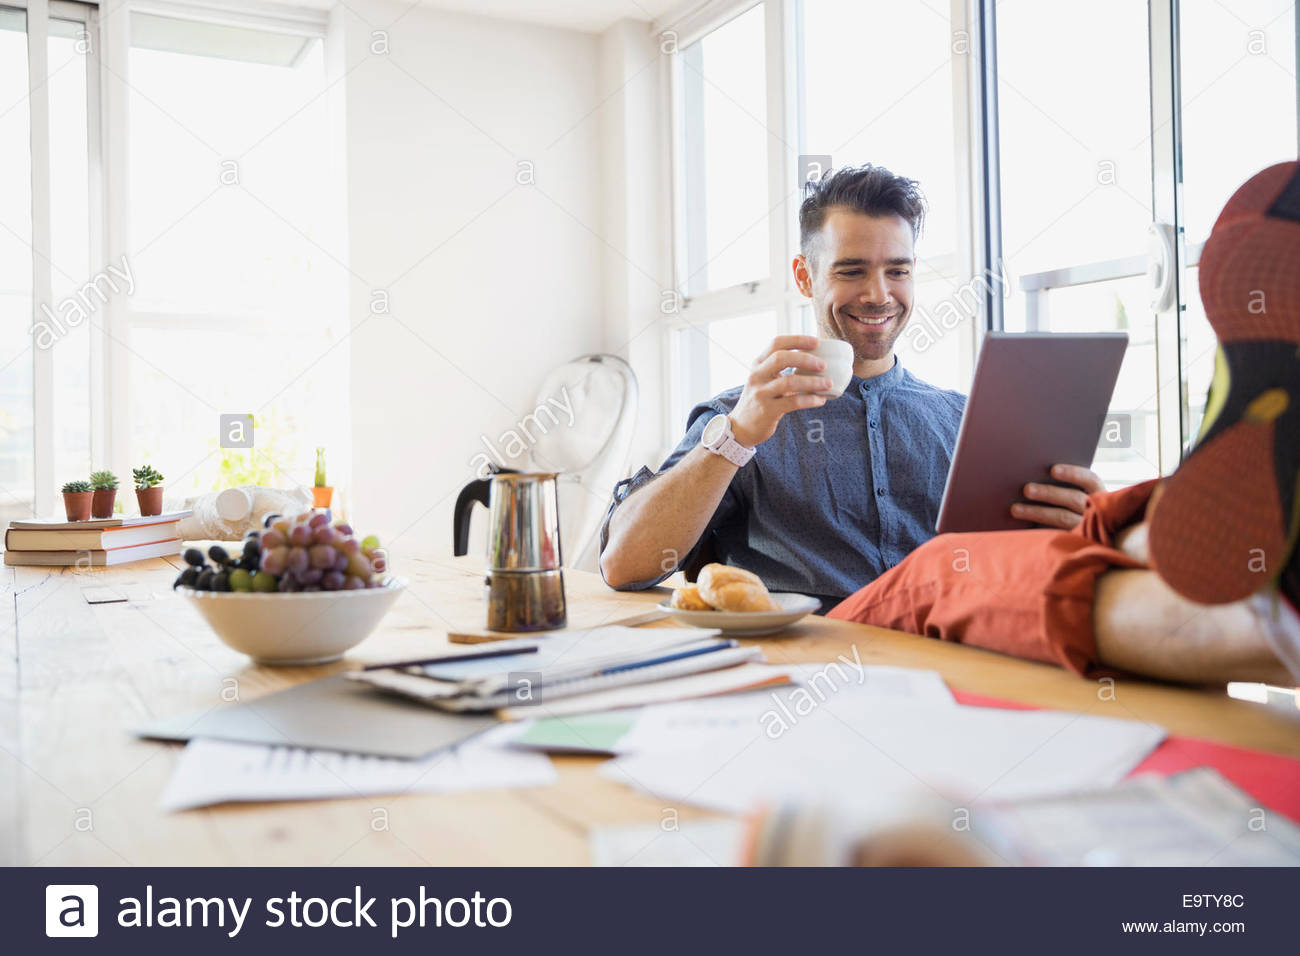 Man using digital tablet with feet on table - Stock Image